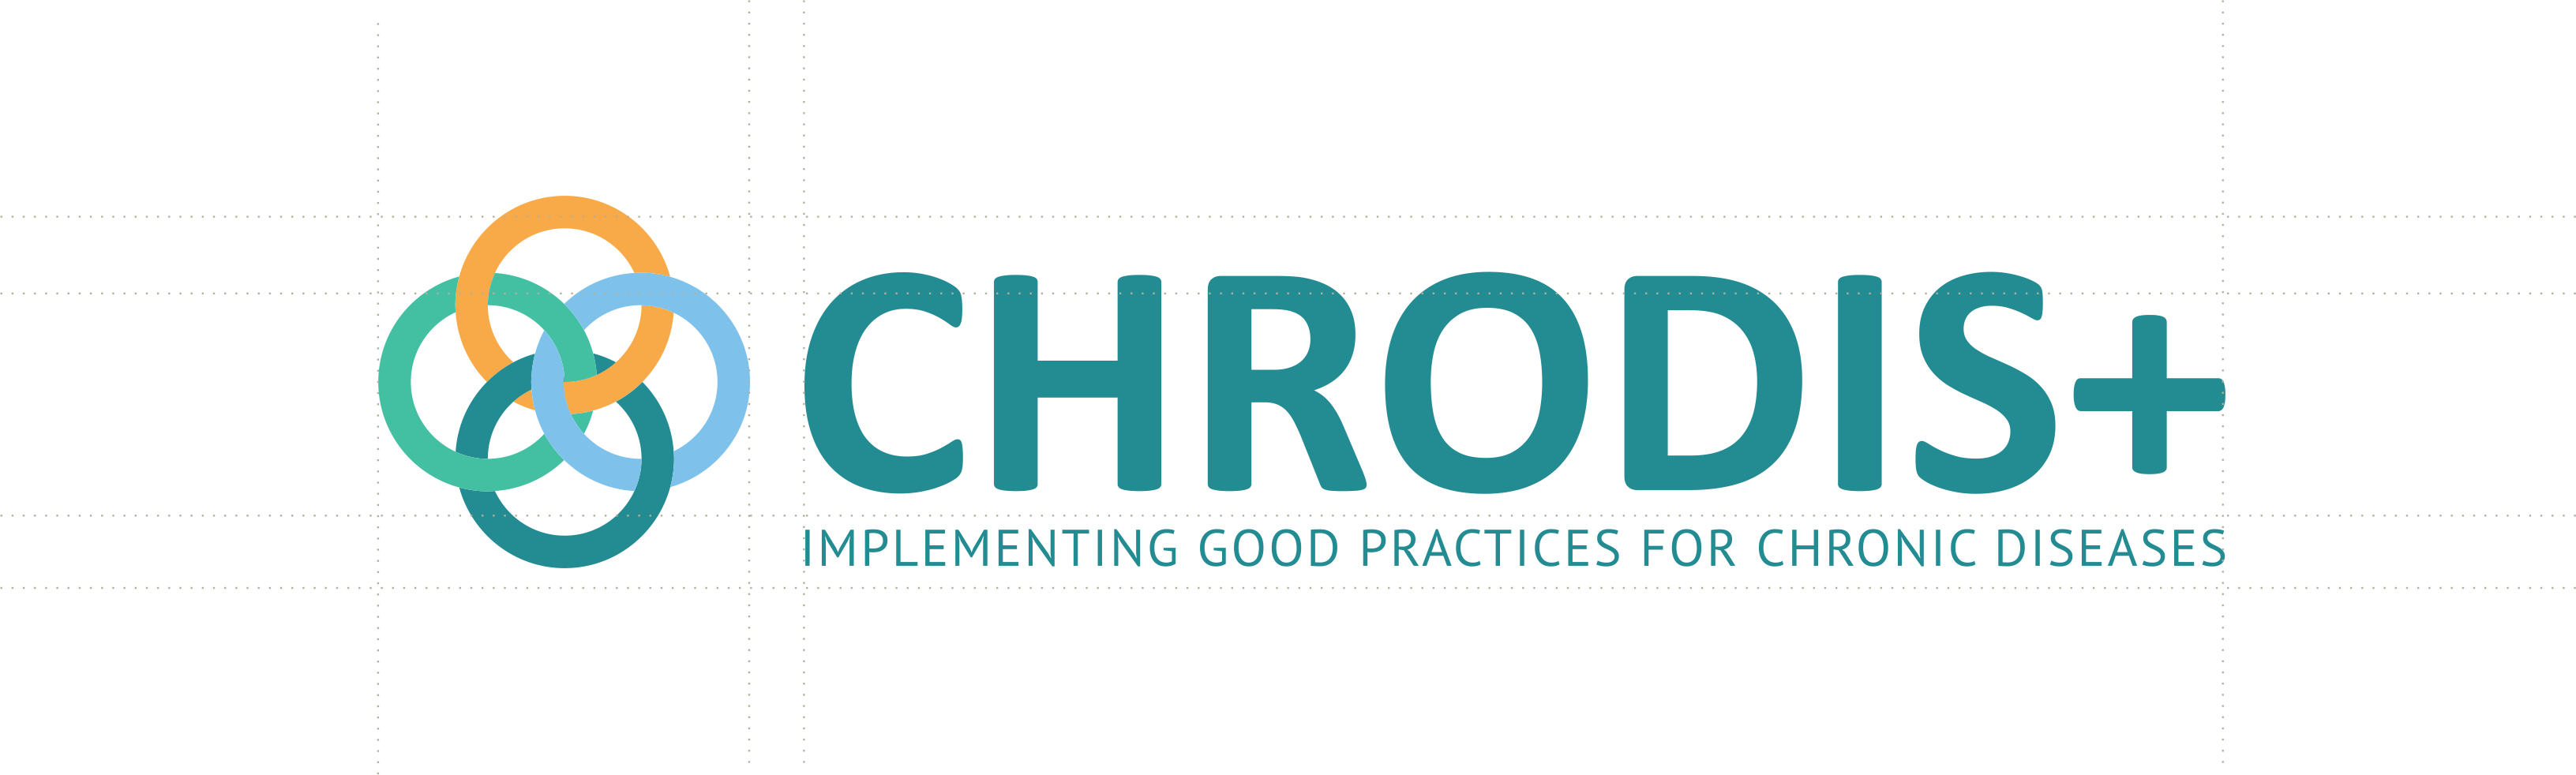 Implementing Good Practices for Chronic Diseases